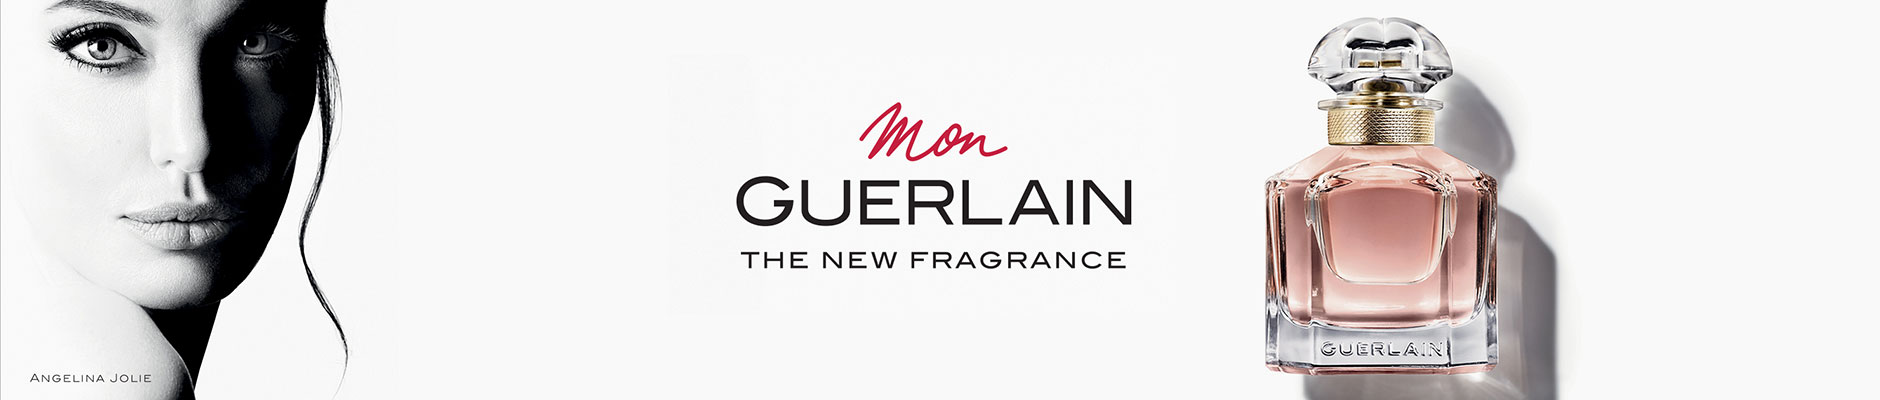 Mon Guerlain - the new fragrance